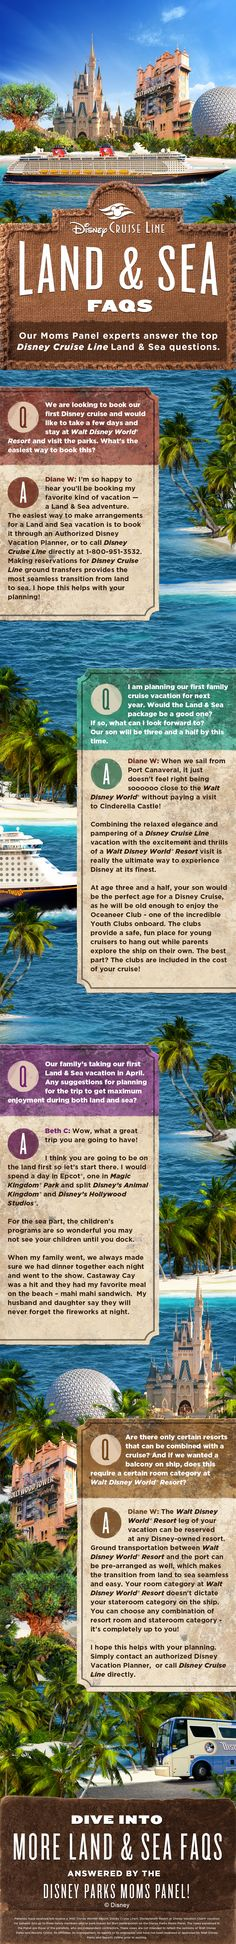 Our Disney Parks Moms Panelist Disney Cruise Line Specialists have answered your frequently asked questions about taking a Disney Cruise following a trip to Walt Disney World. Click to learn more about a Land & Sea vacation!